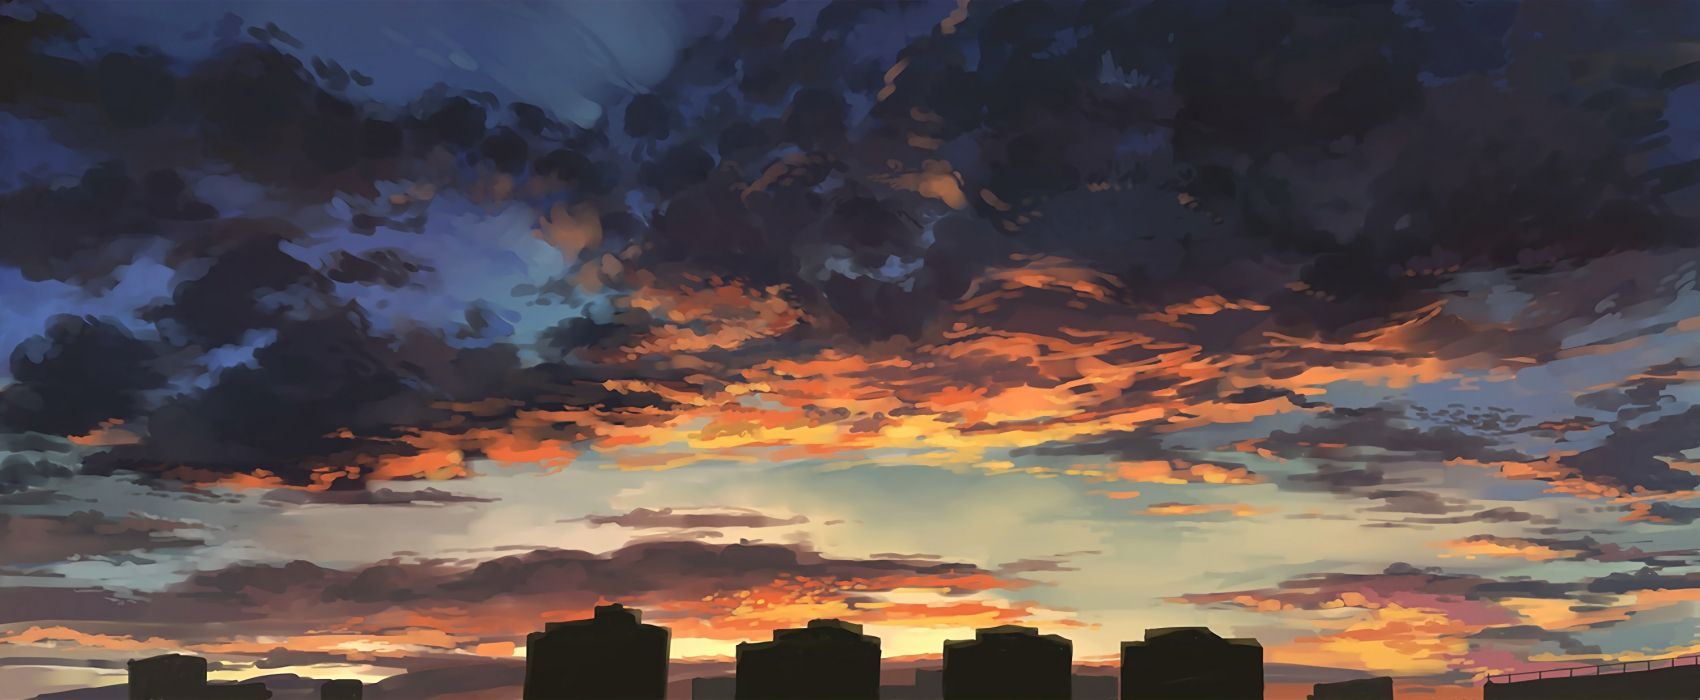 city clouds cropped dualscreen nobody nodata original photoshop scenic sky sunset wallpaper